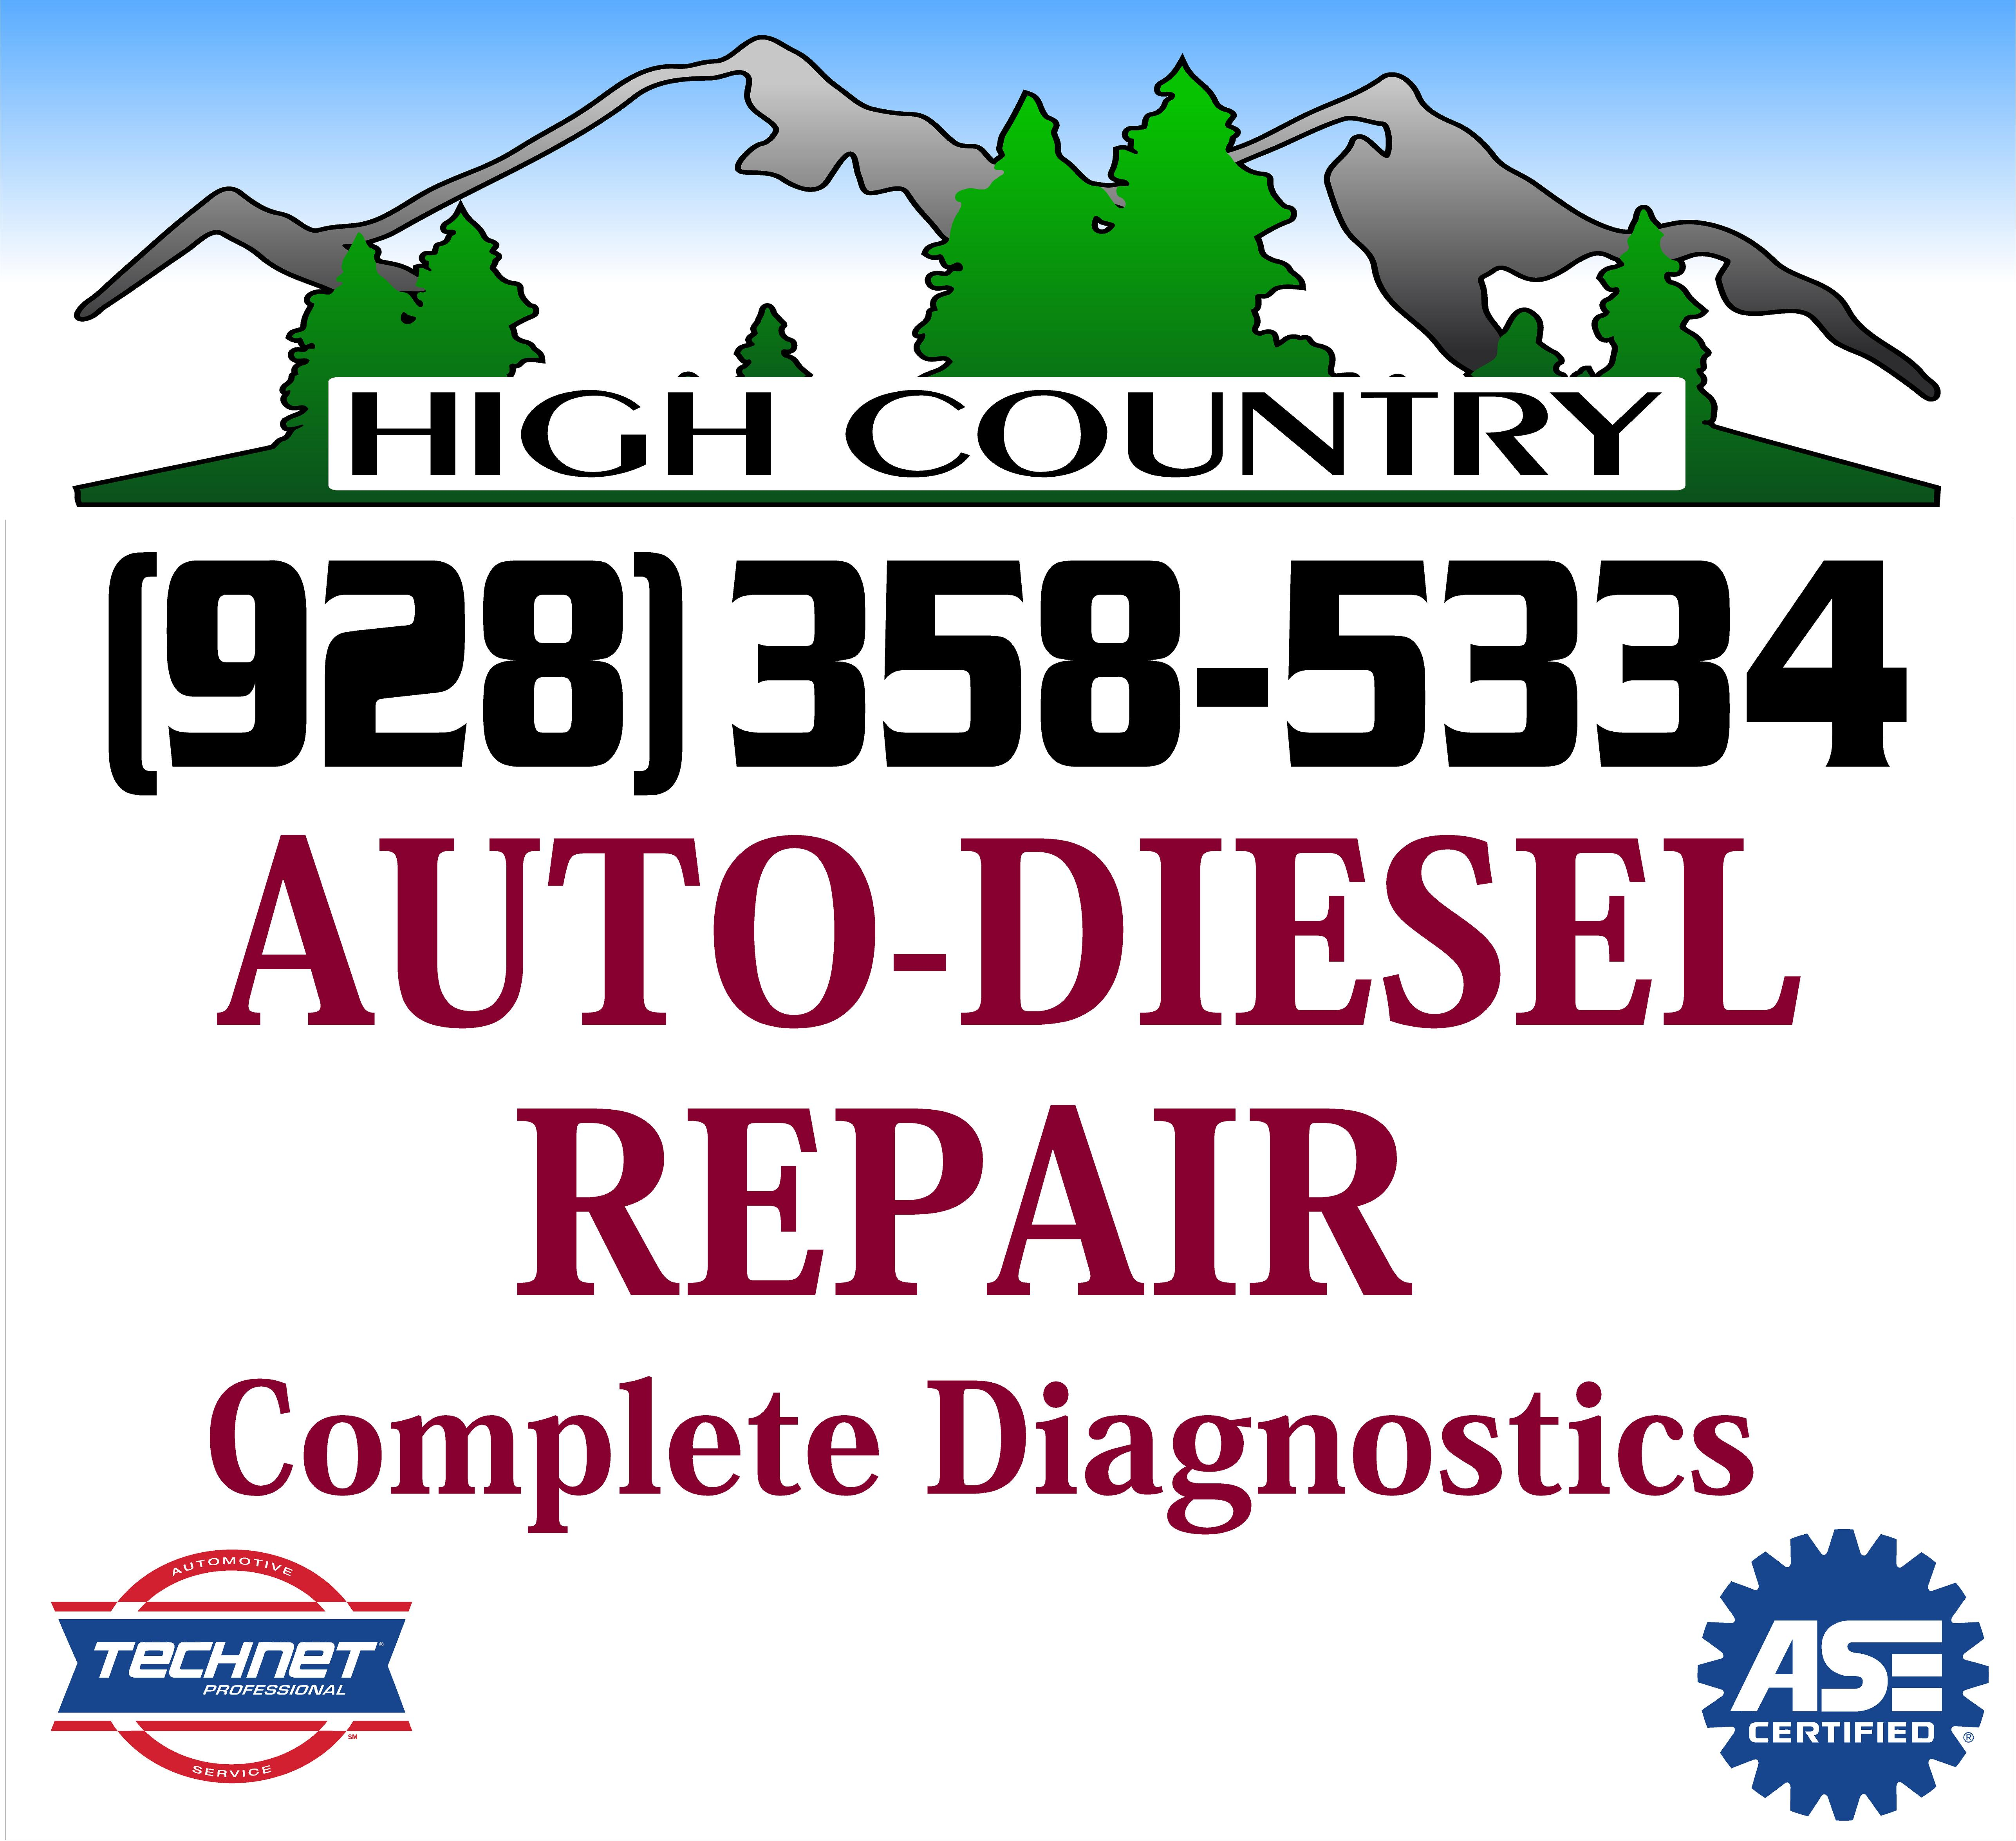 High Country Auto-Diesel Repair logo